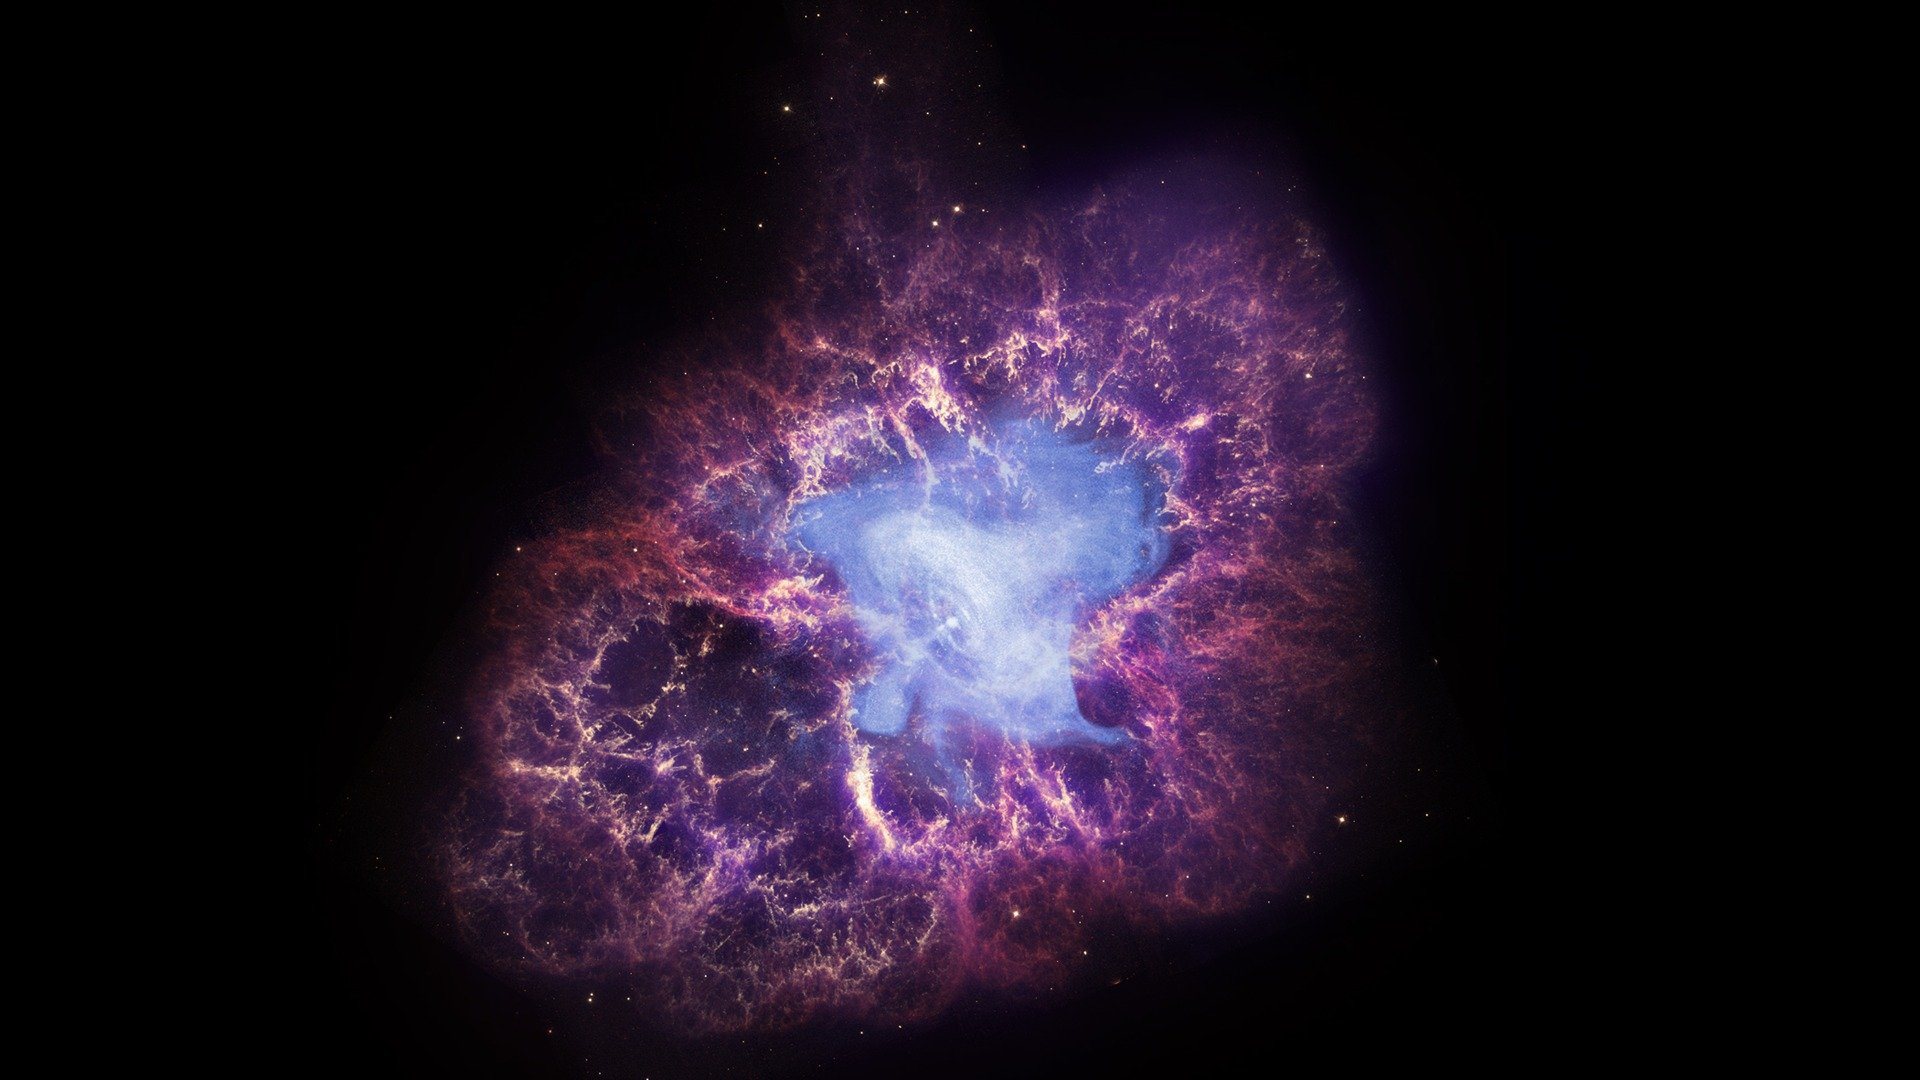 Crab Nebula wallpaper 1920x1080